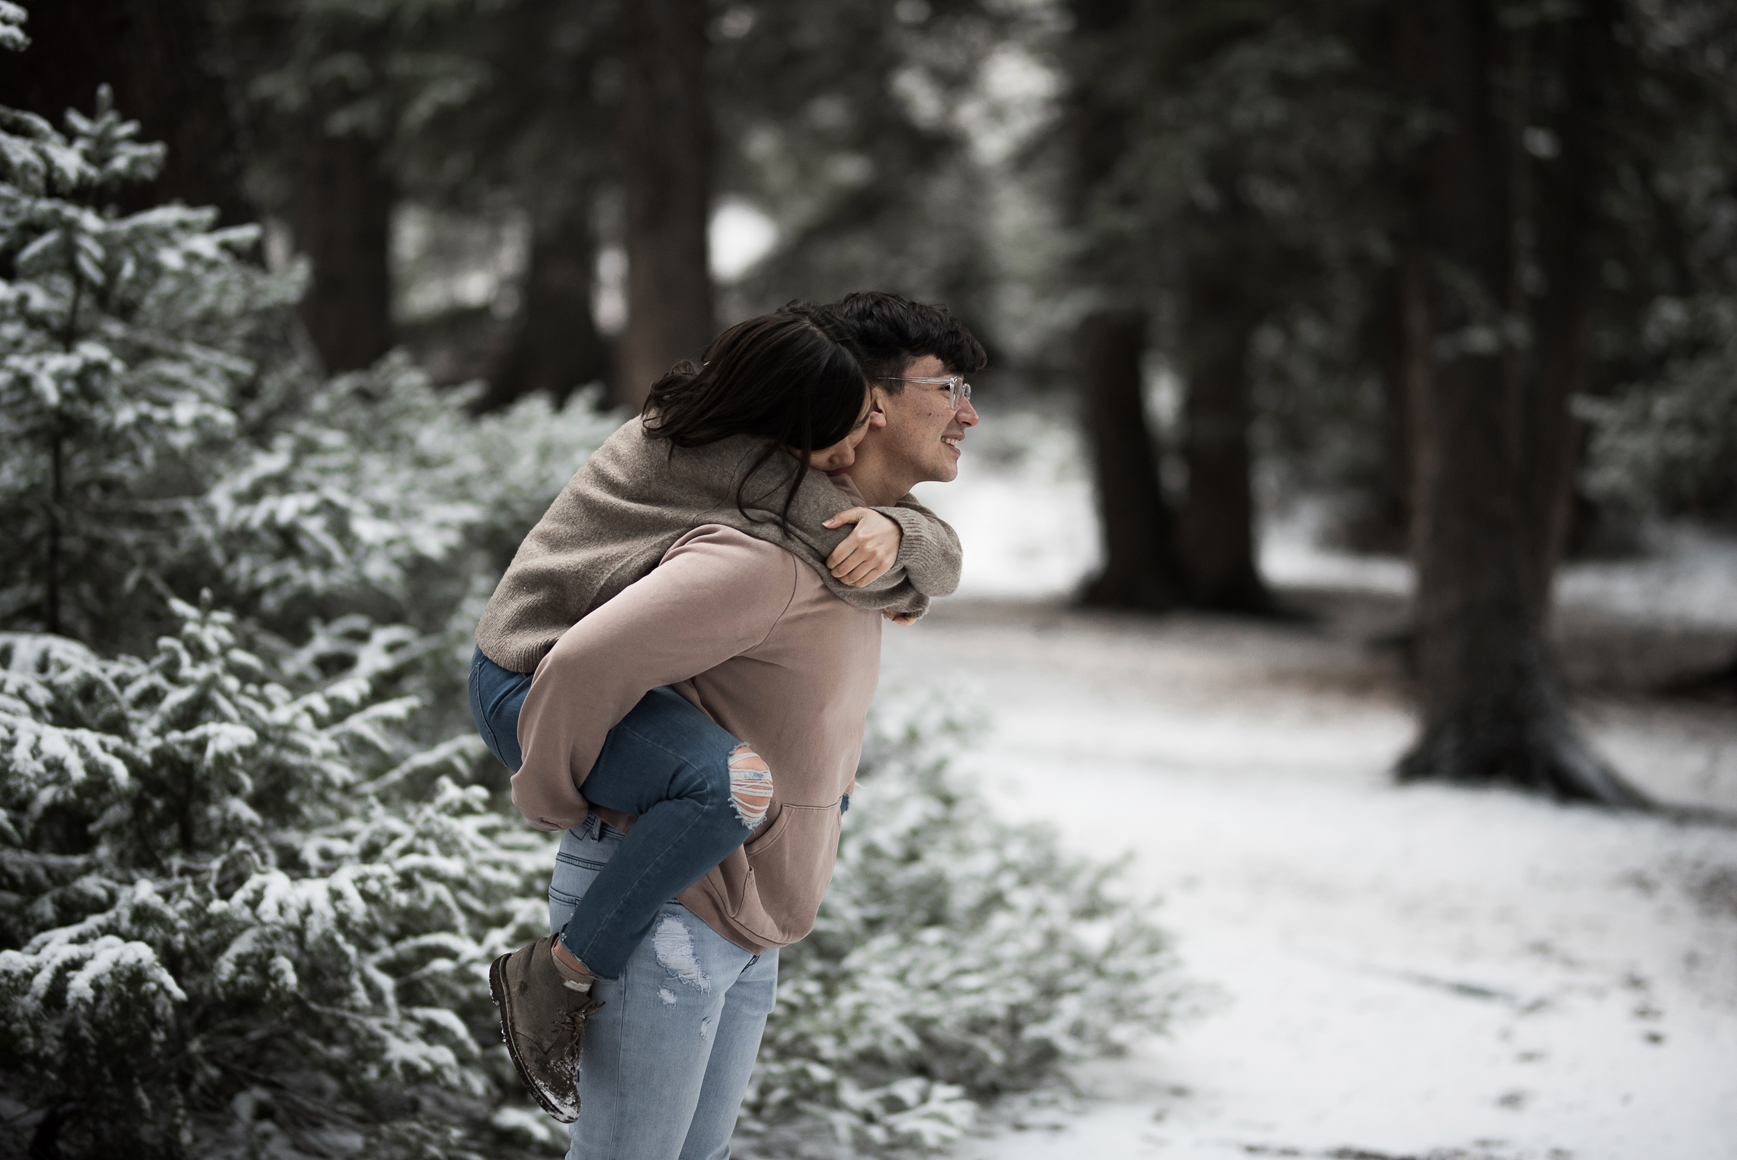 piggyback ride through a snowy grove of trees